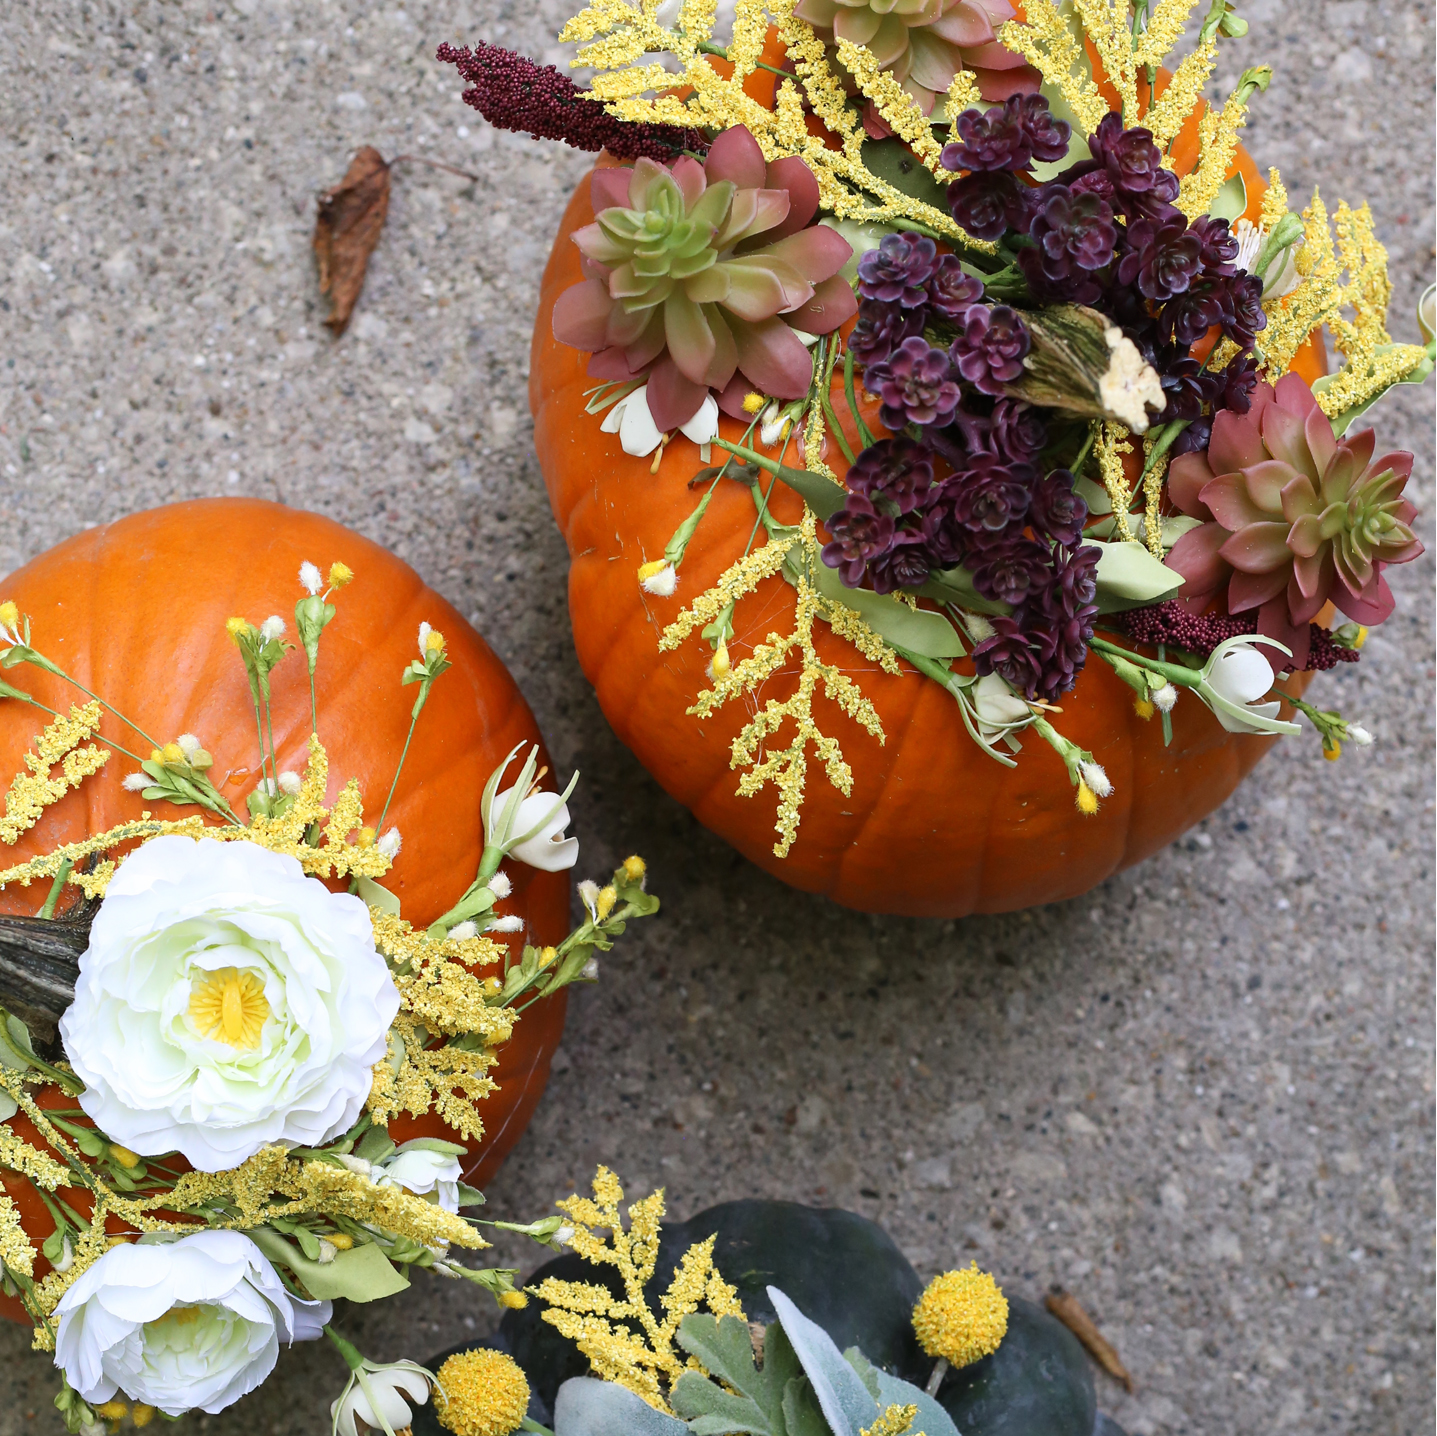 Mess free and simple steps make these DIY Floral Pumpkins a must try! Fall DIY project on Lily & Val Living!